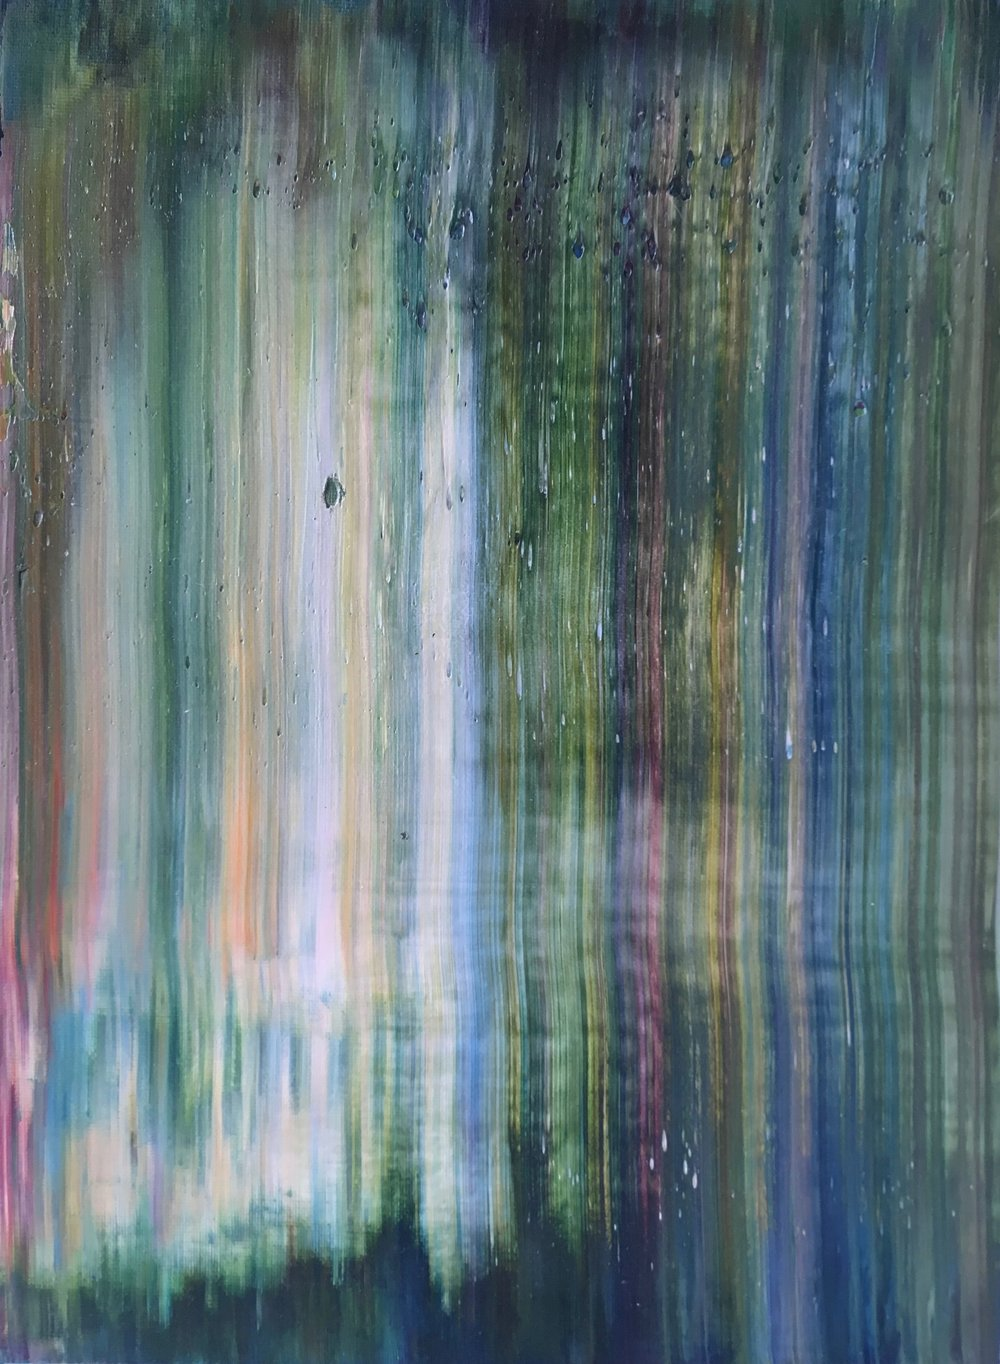 """Lush"" is an original, abstract oil painting created by Los Angeles based artist, Laura Viapiano."